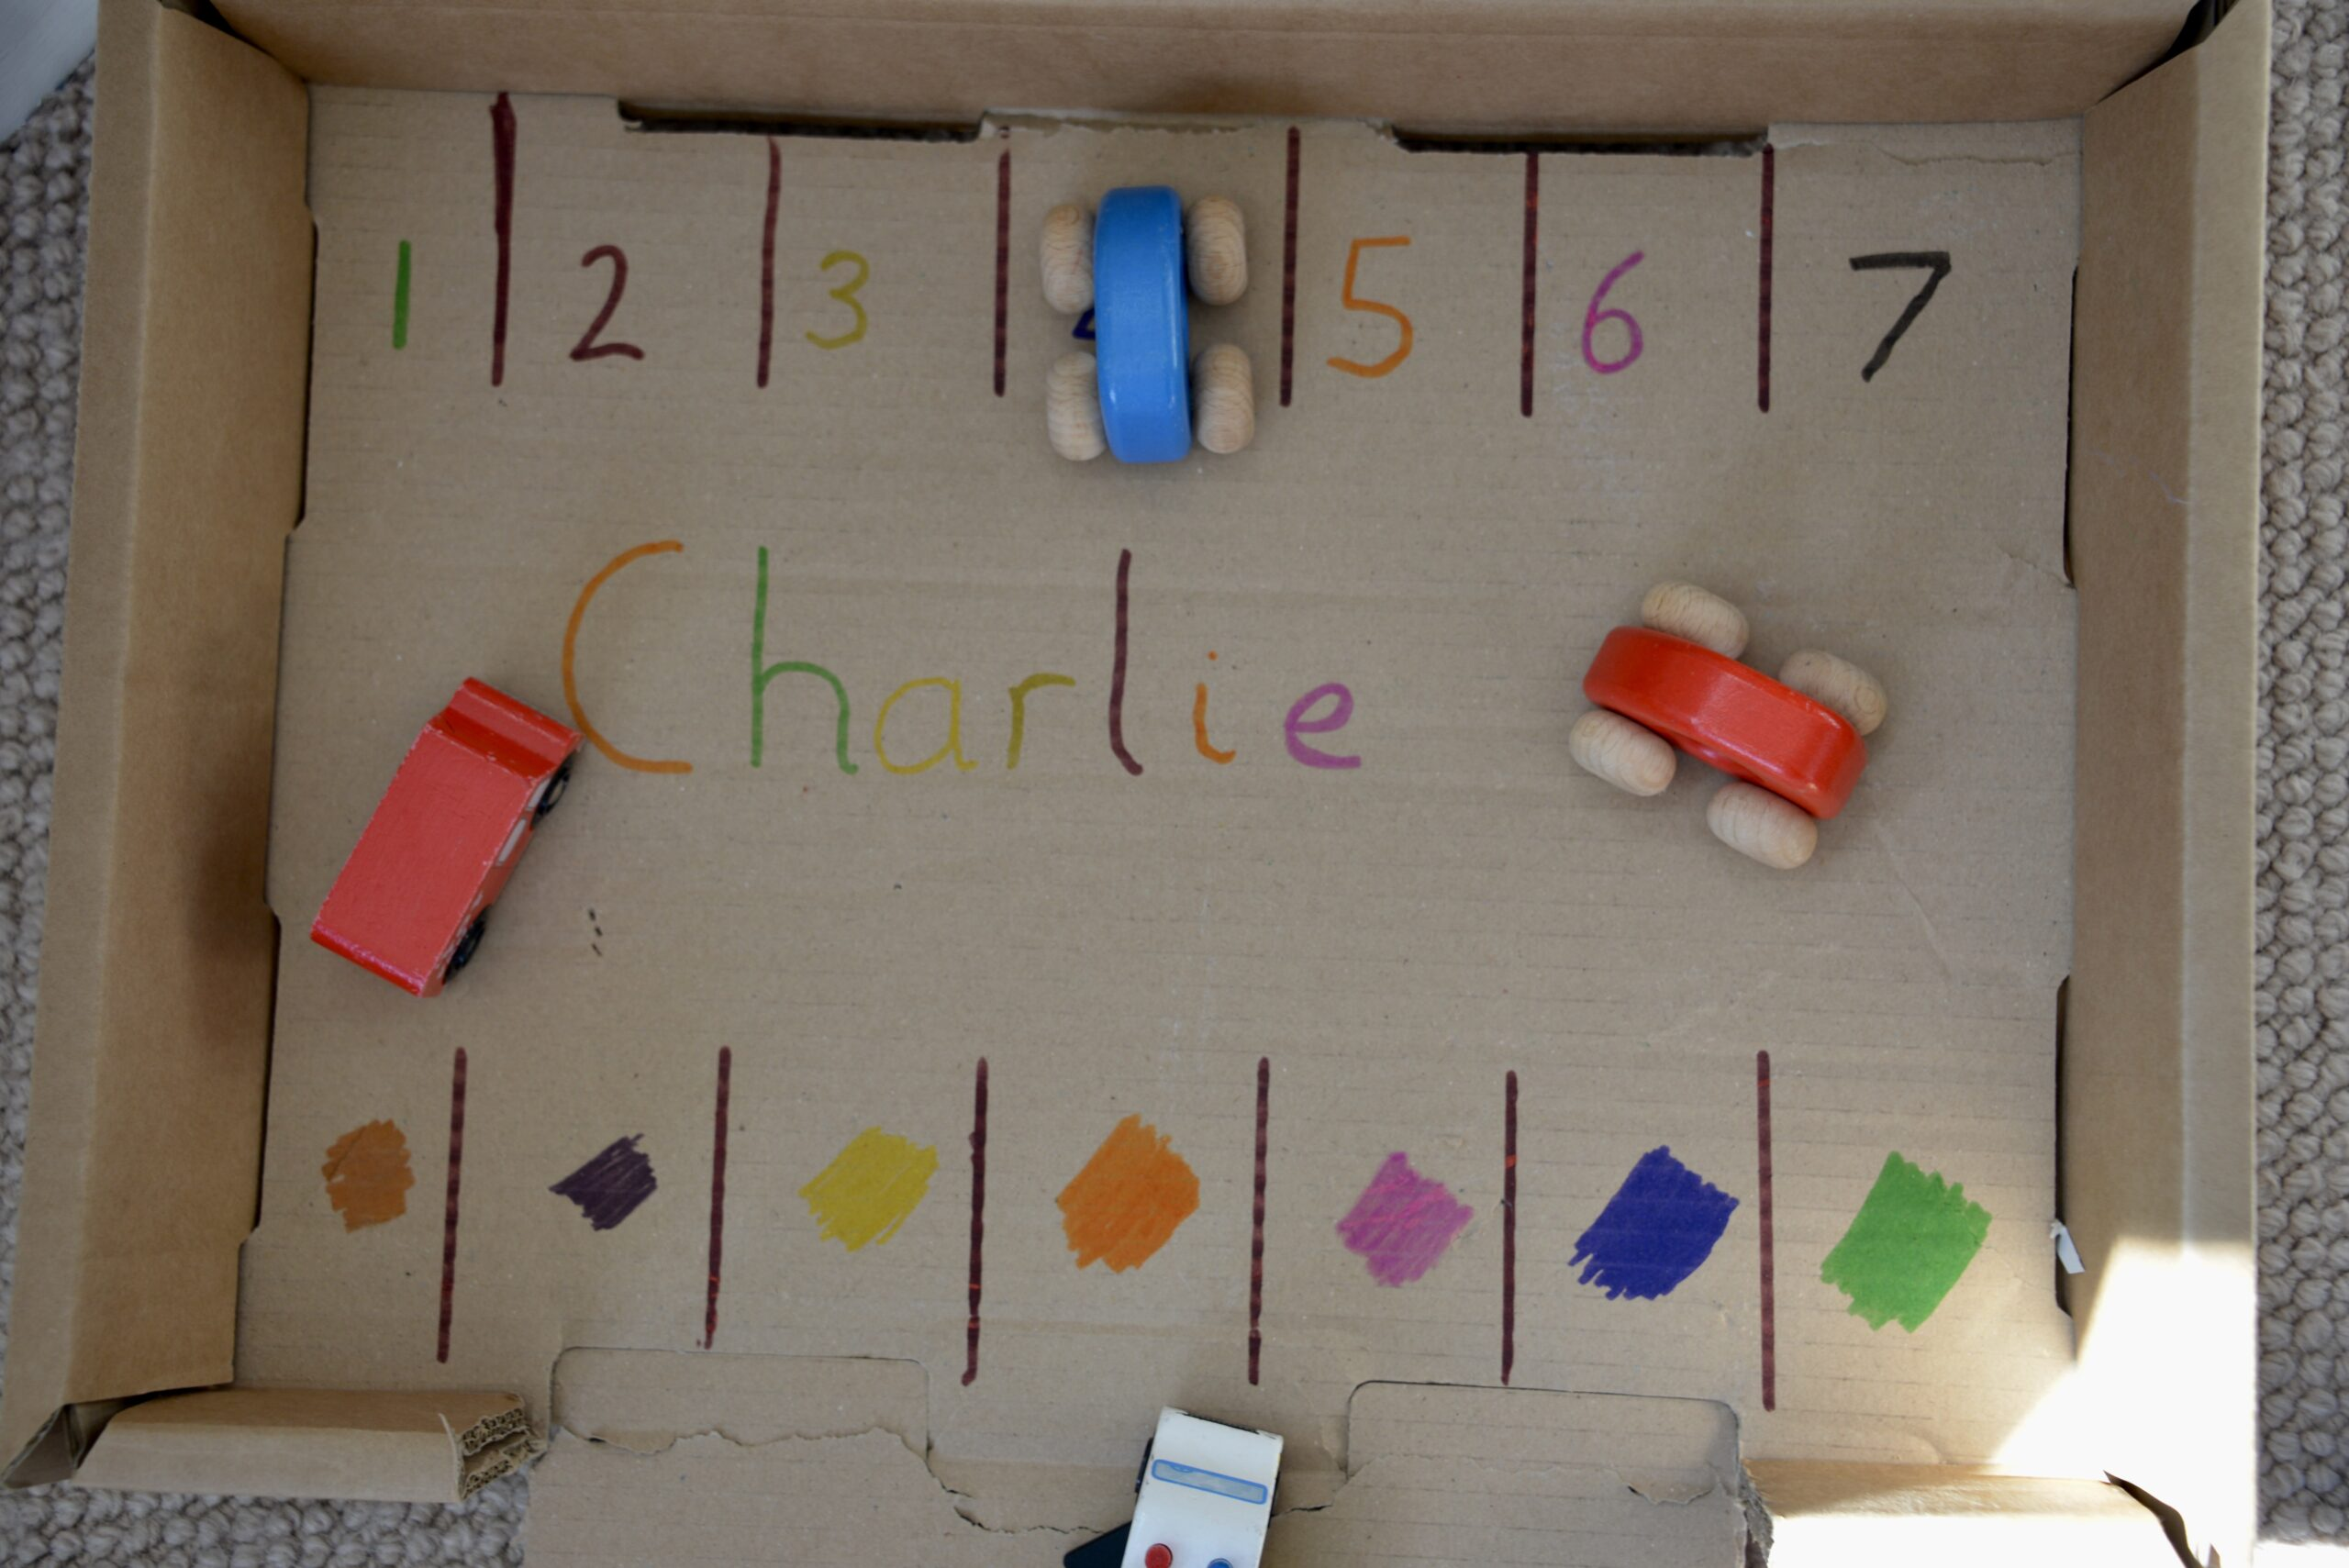 recycled cardboard box car park used to teach numbers and colours